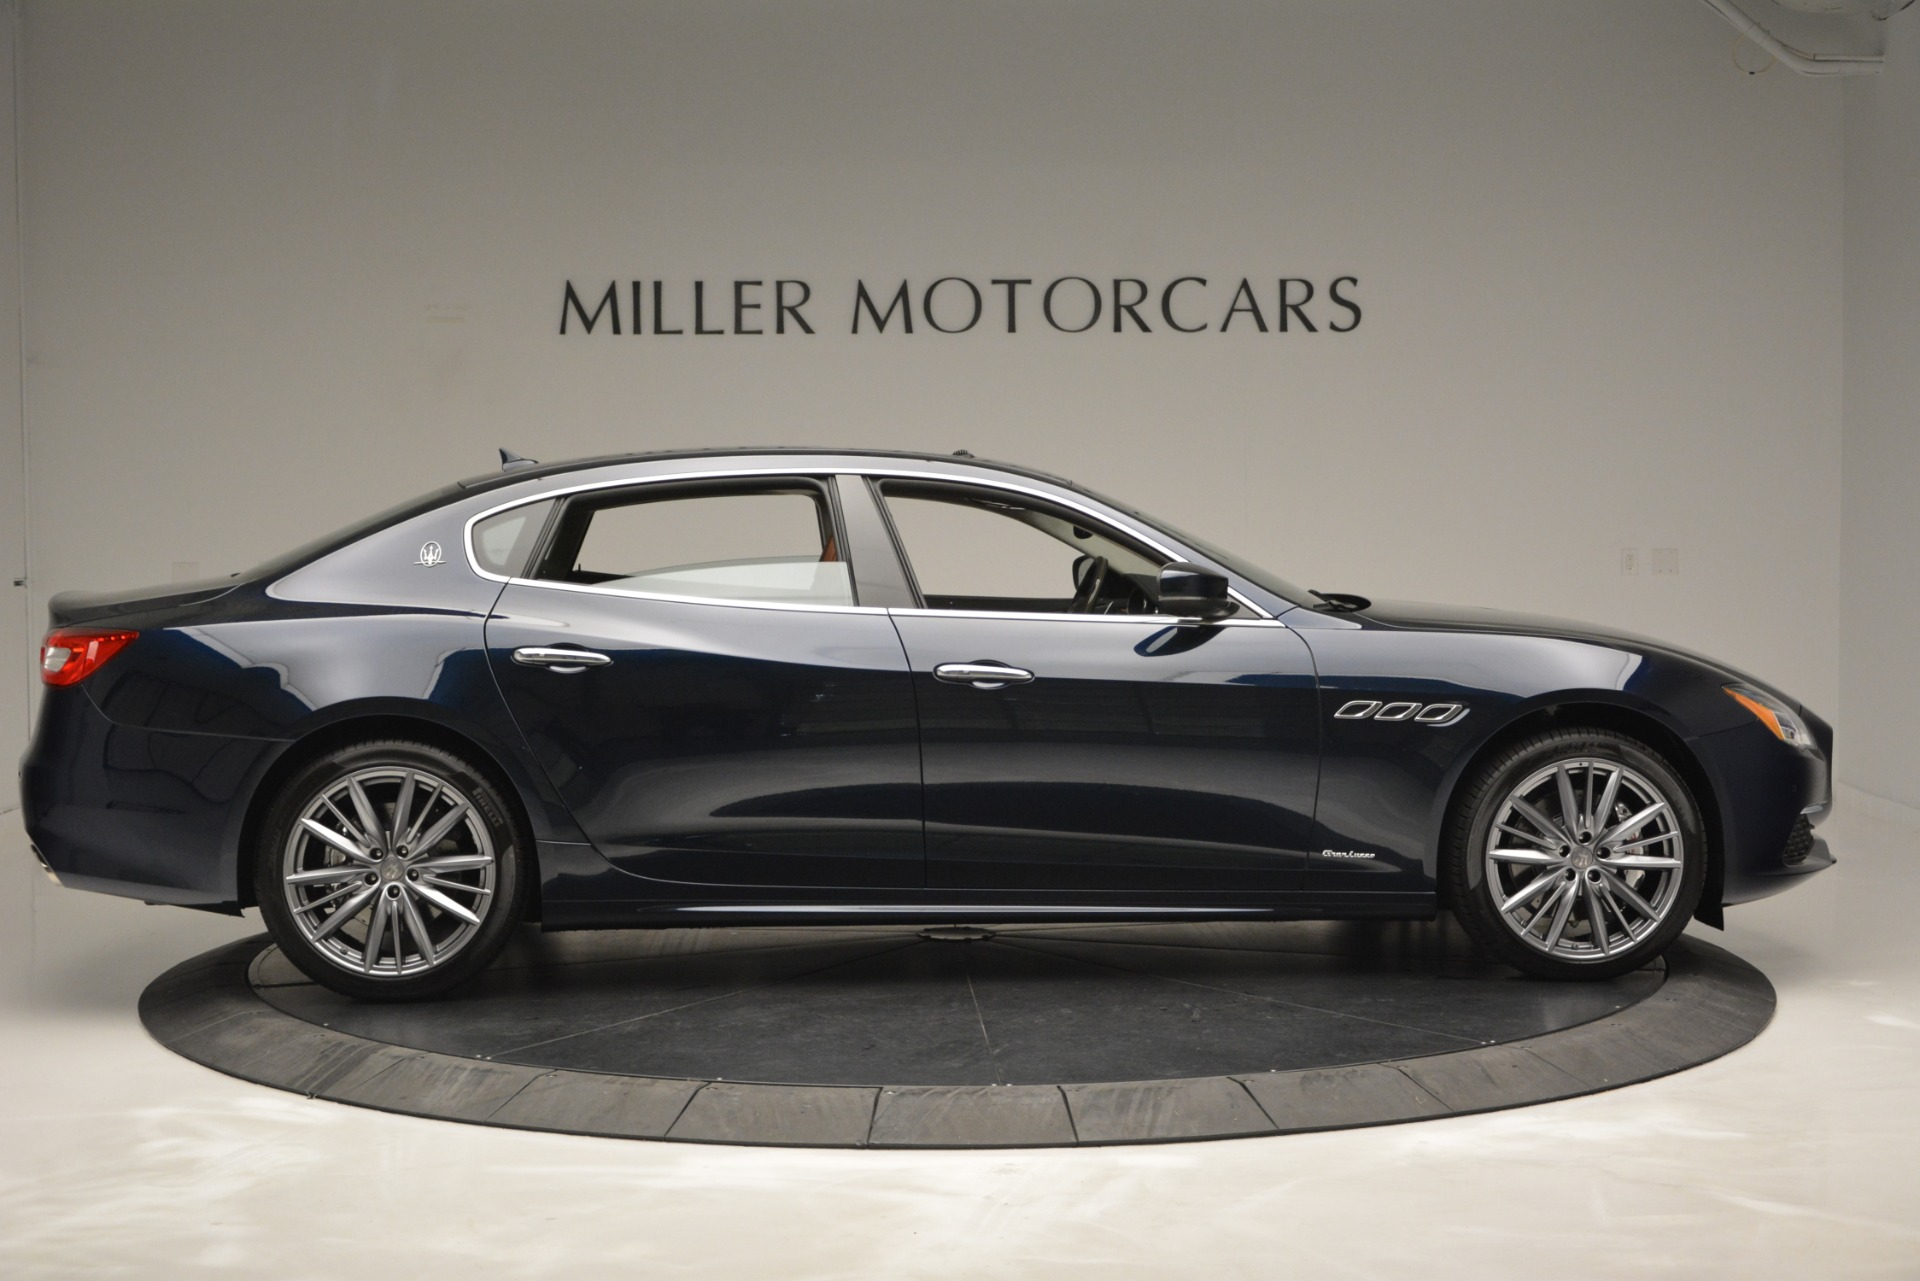 New 2019 Maserati Quattroporte S Q4 GranLusso Edizione Nobile For Sale In Greenwich, CT 2898_p14